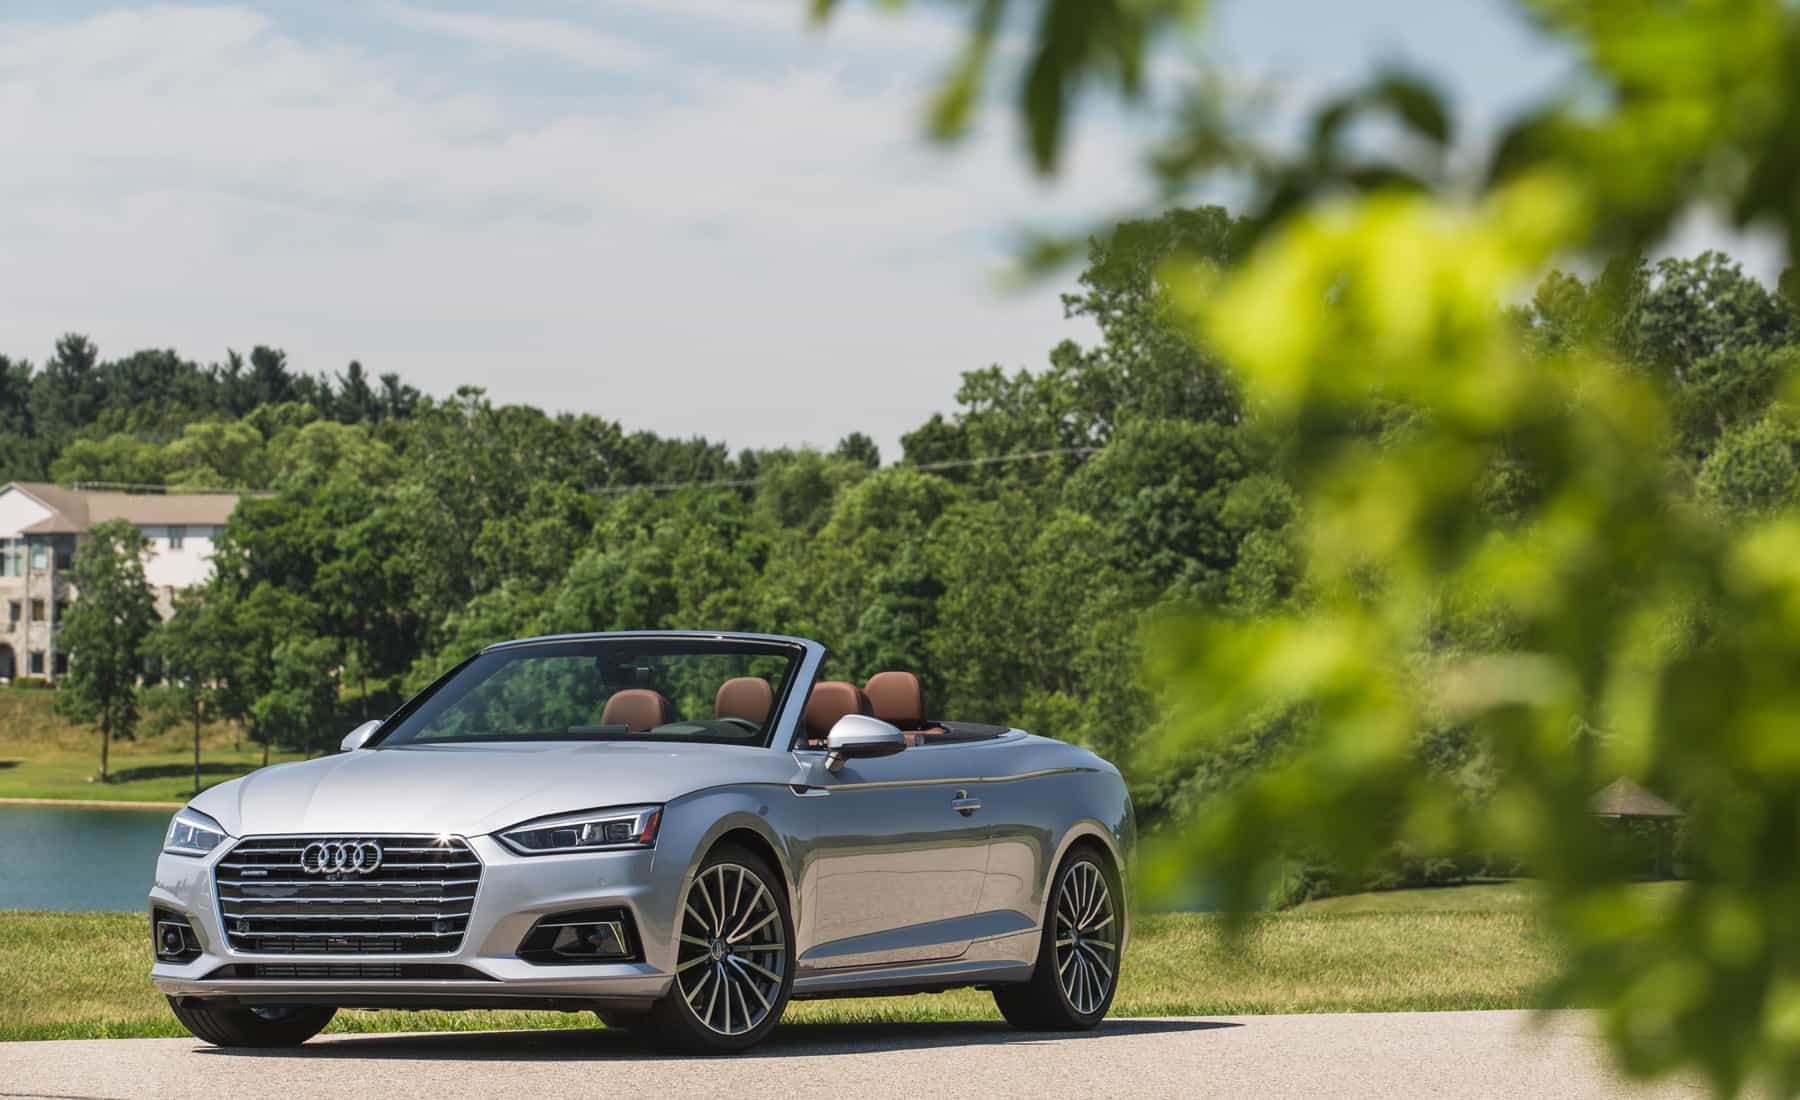 2018 Audi A5 Cabriolet Exterior Roof Open Side And Front (Photo 8 of 45)